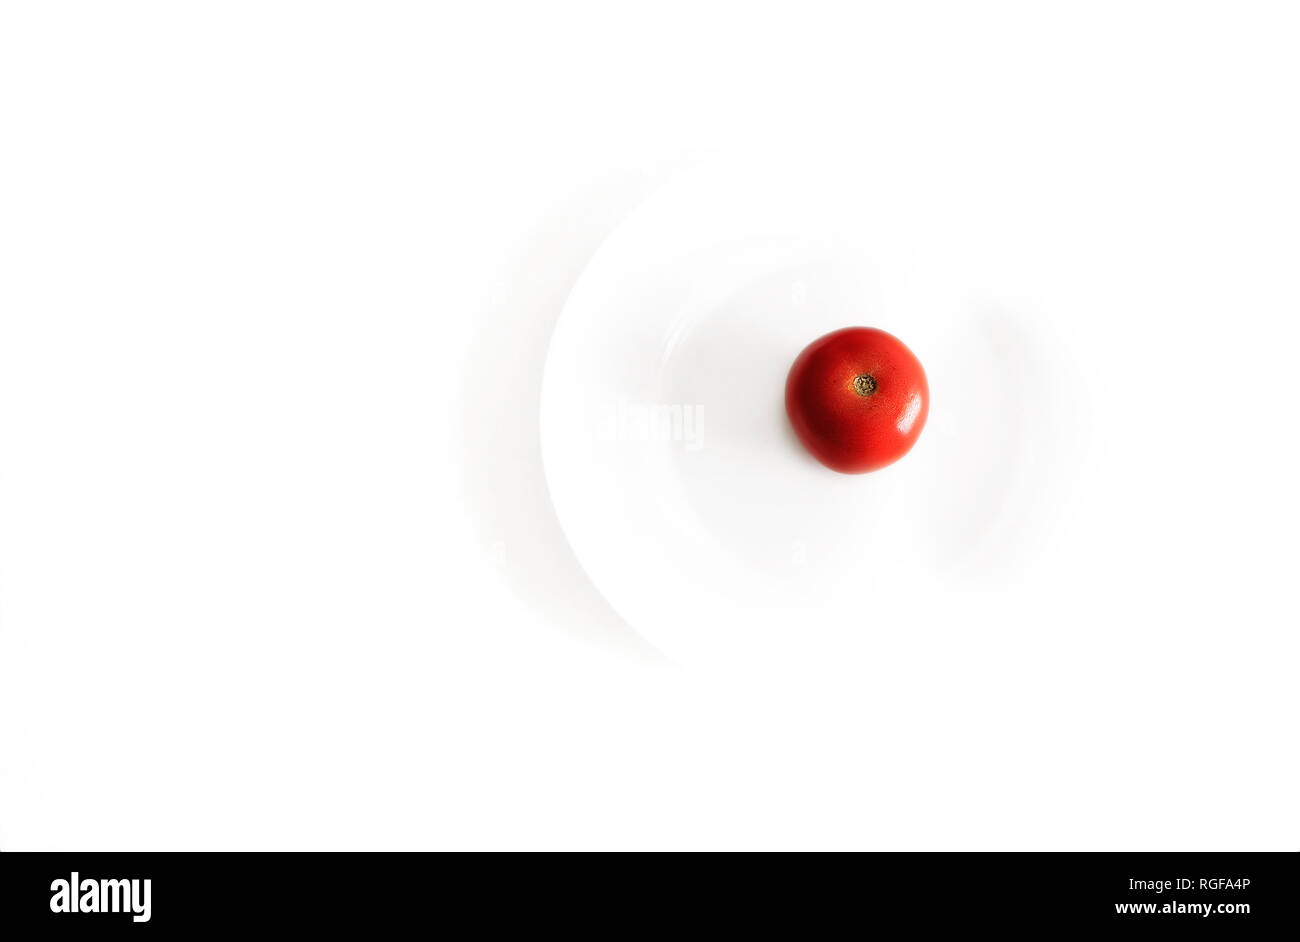 Red tomato on a white dish. Minimalist photography. - Stock Image